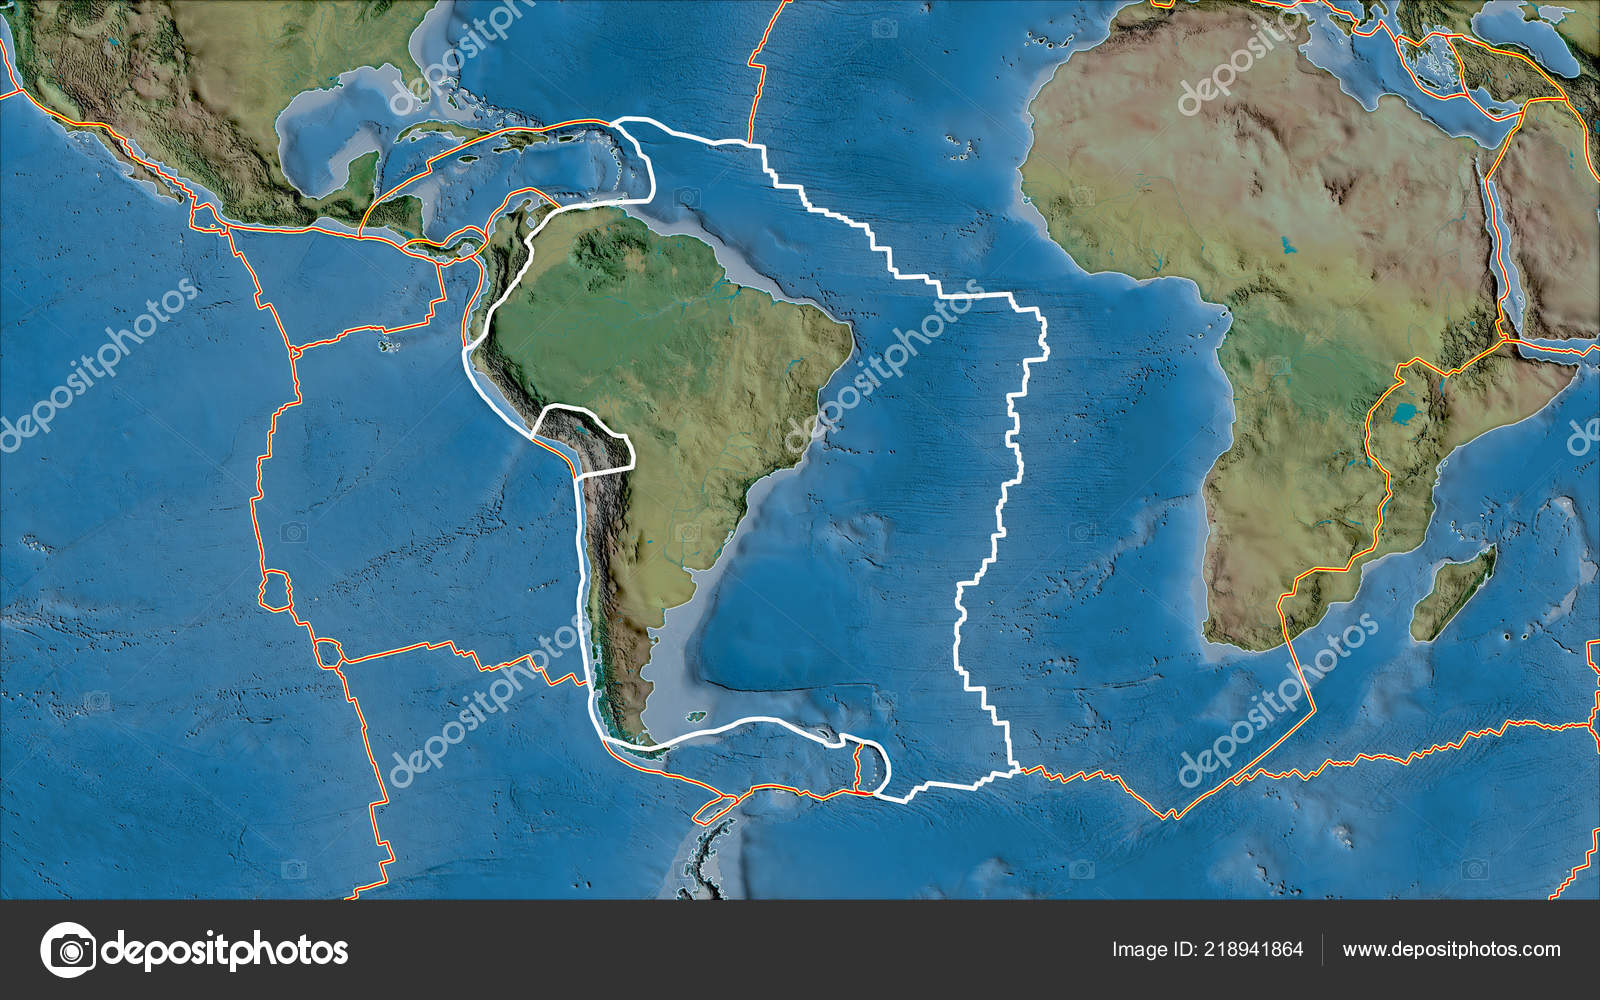 Outlined South American Tectonic Plate Borders Adjacent Plates